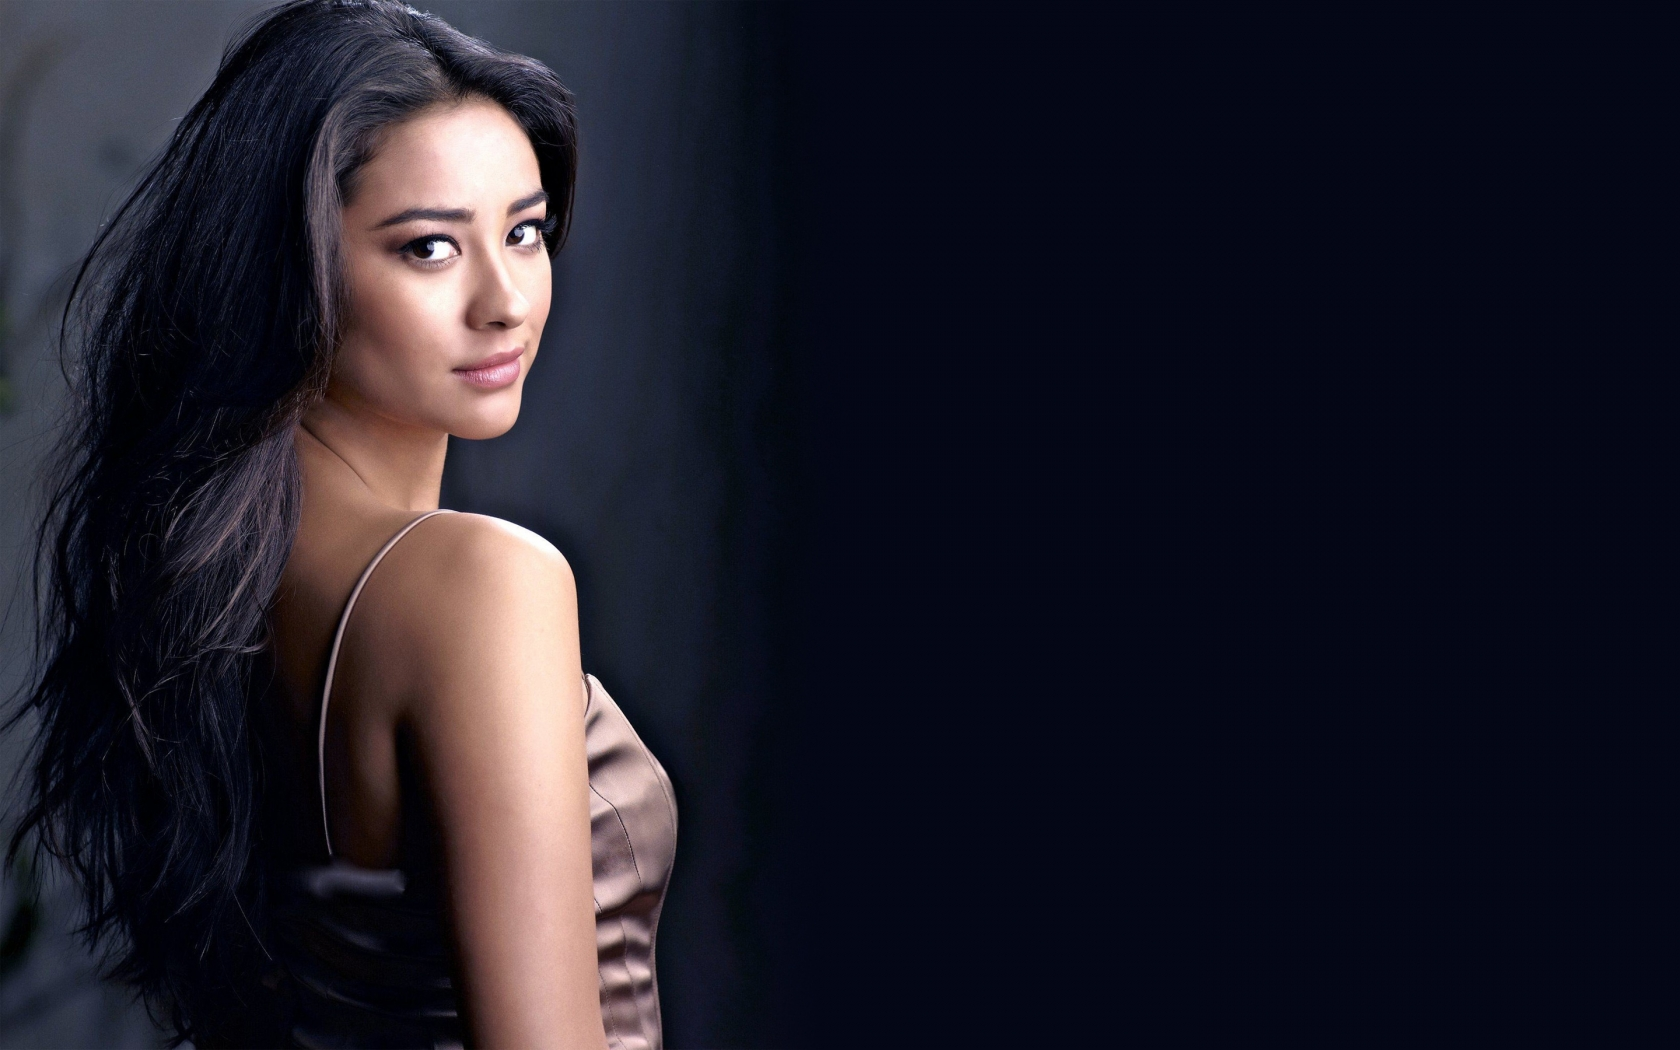 Shay Mitchell Cool for 1680 x 1050 widescreen resolution